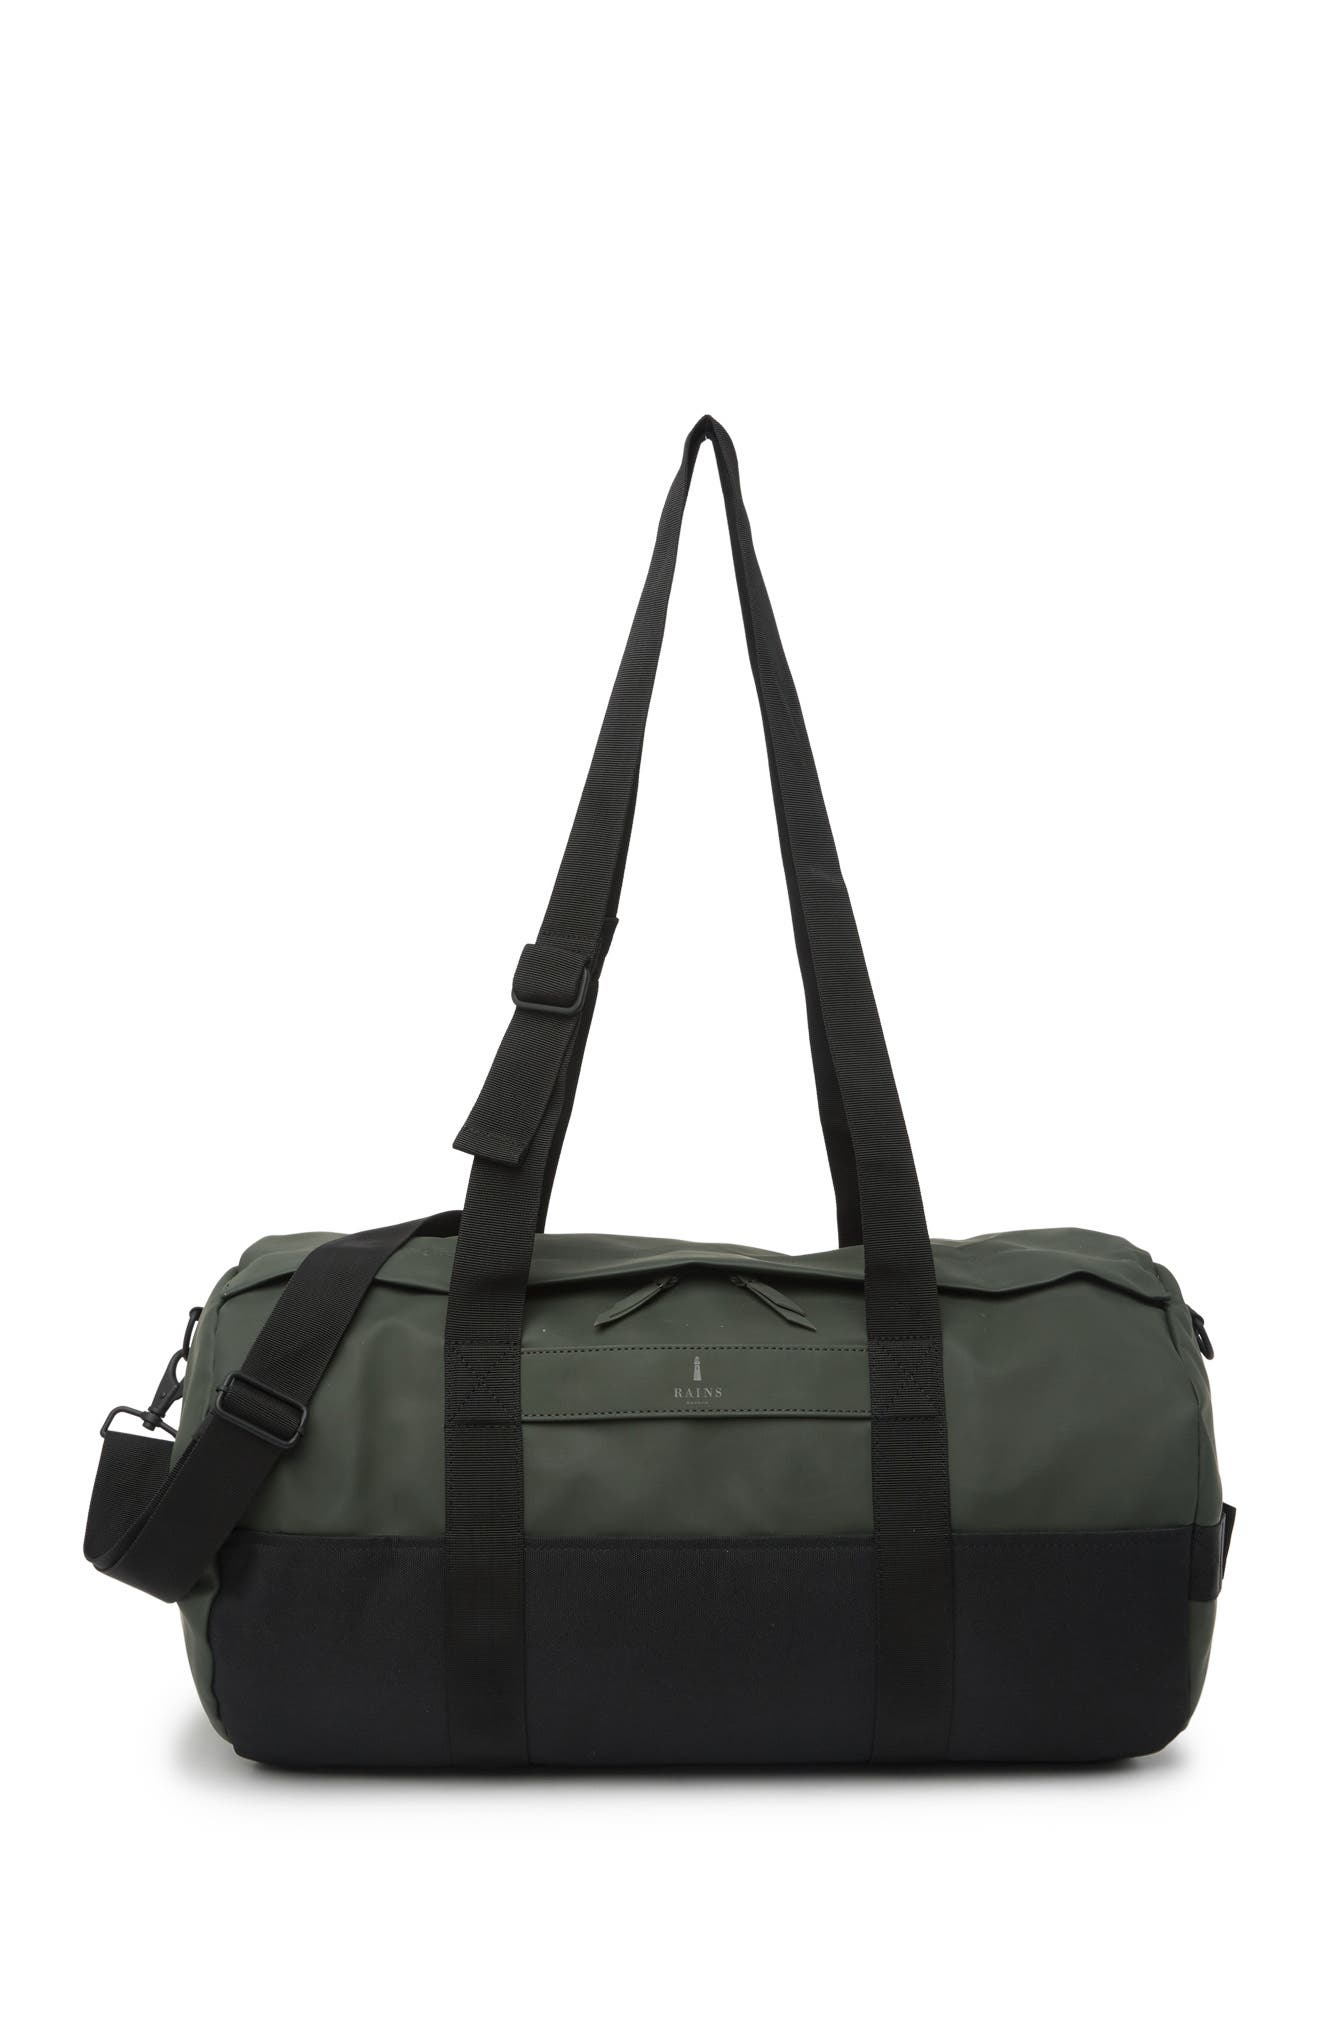 Image of Rains Water Resistant Duffel